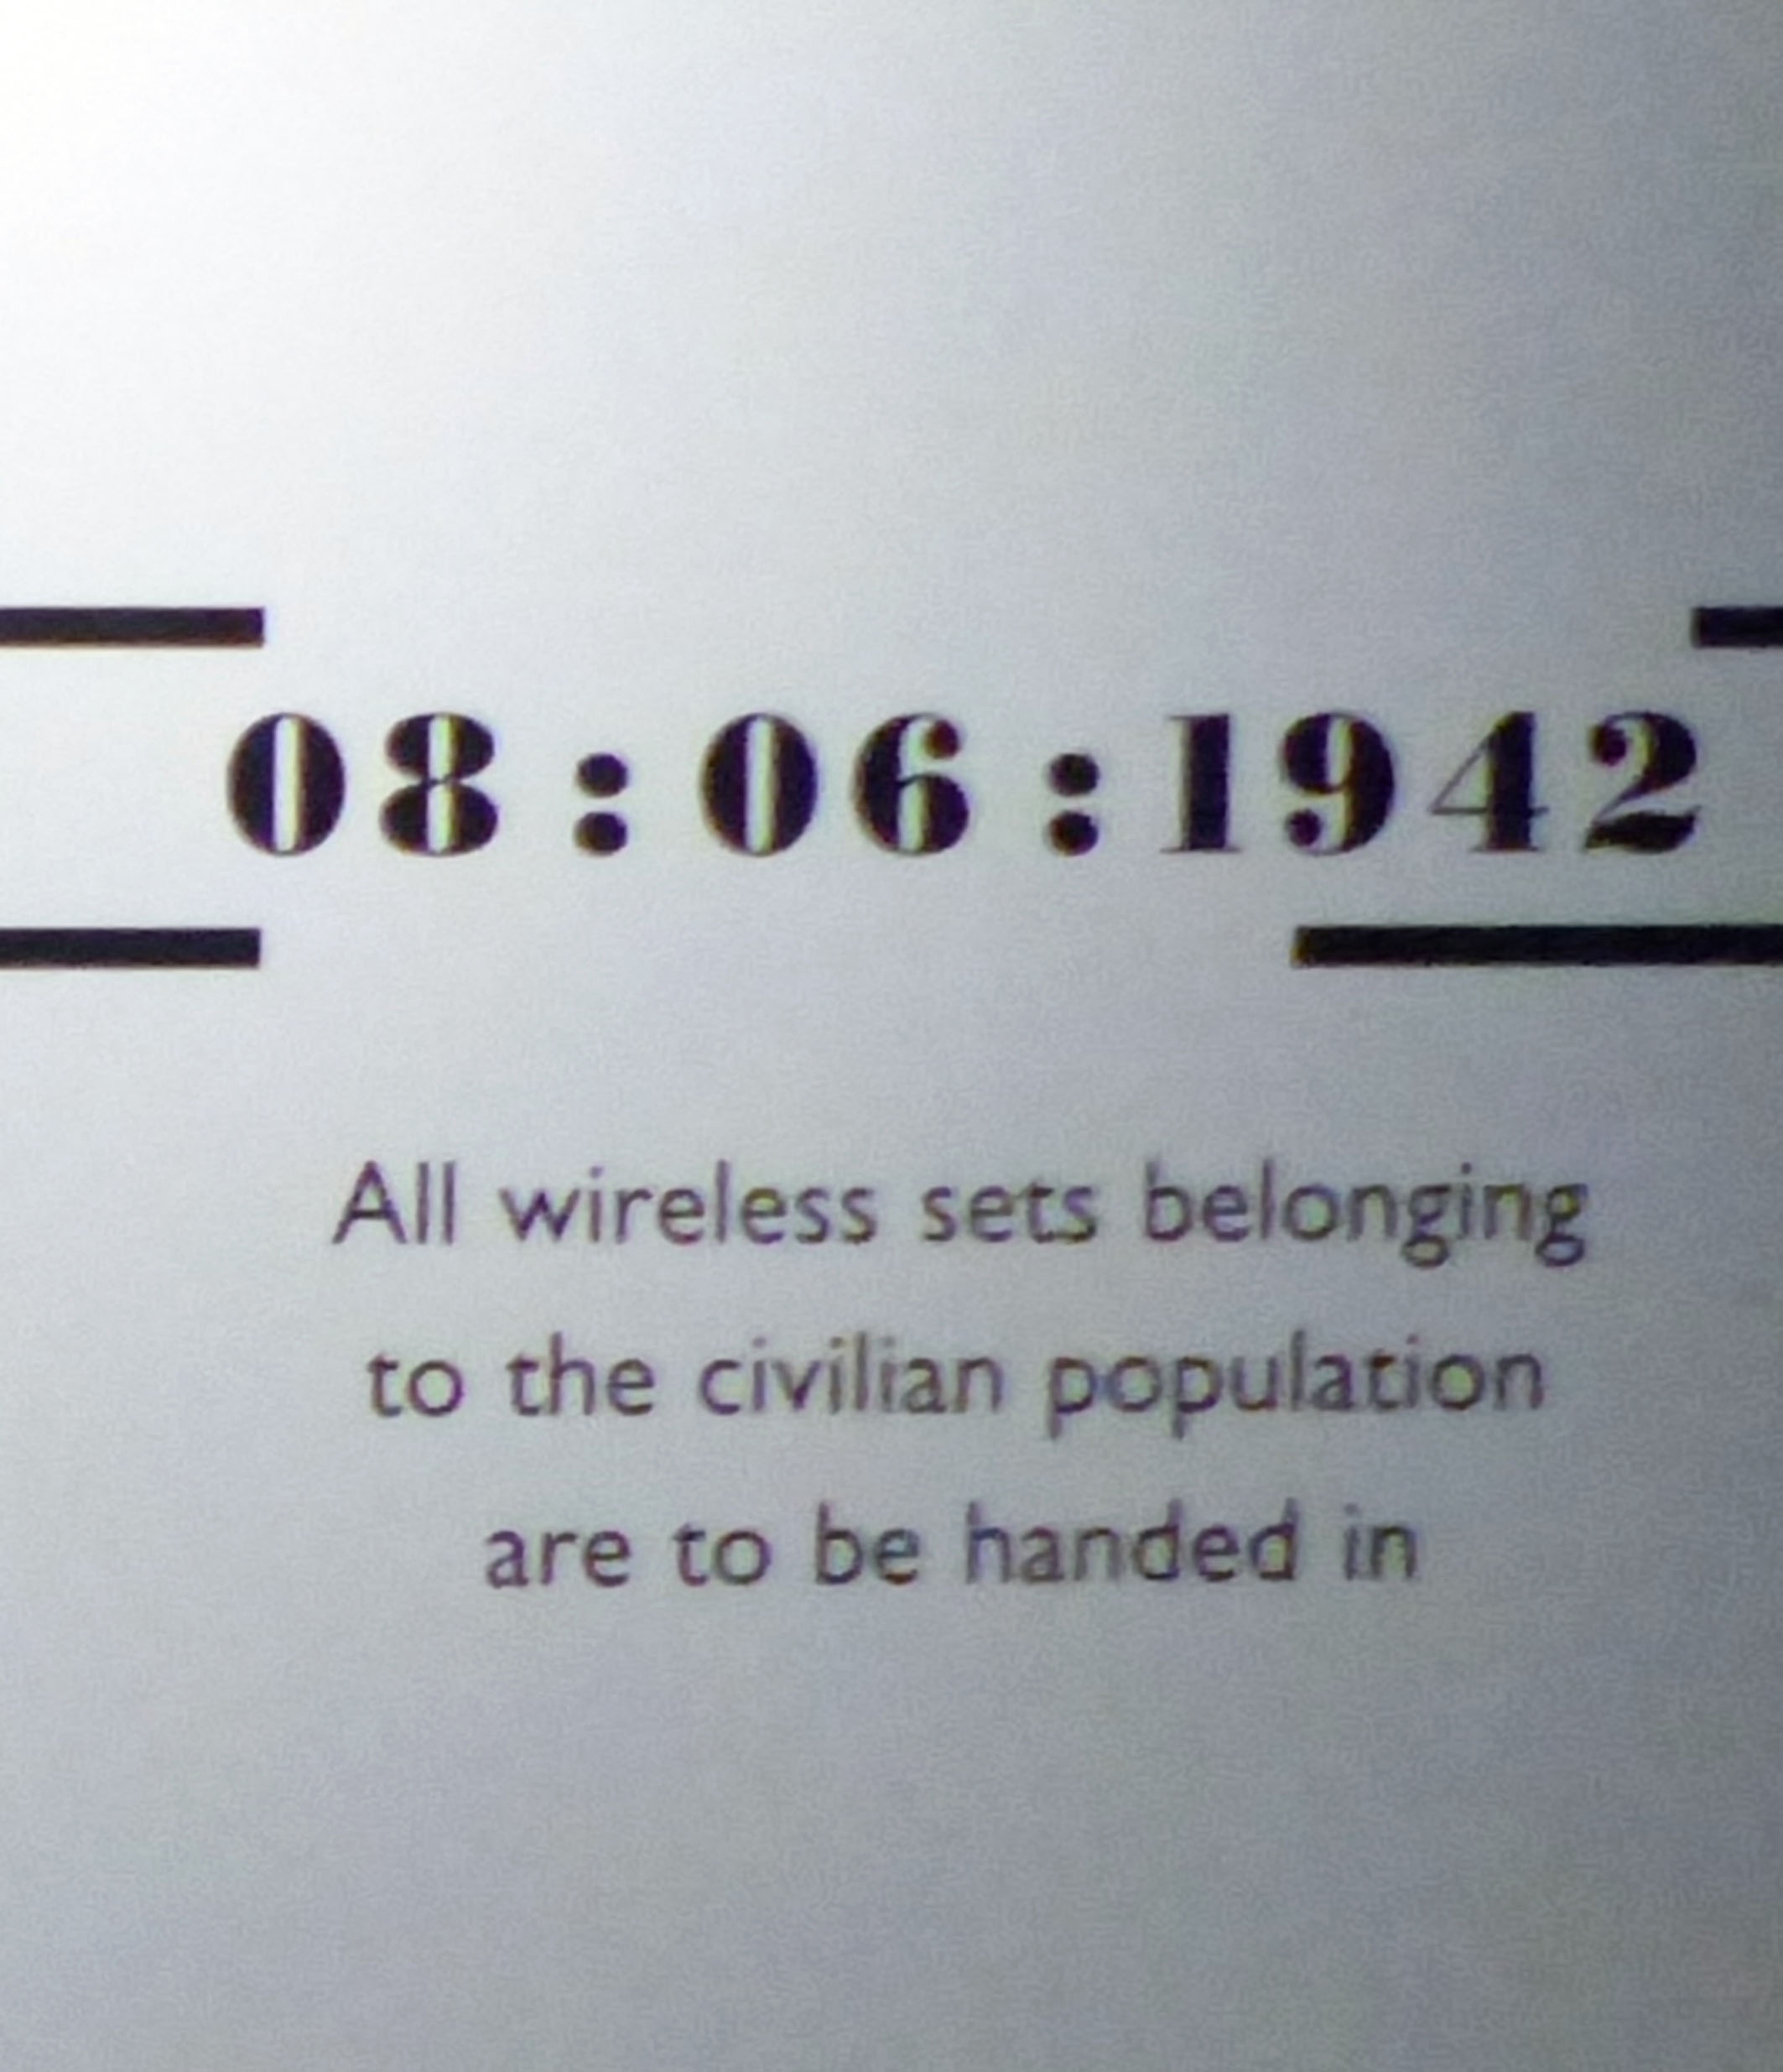 Poster with rule about handing in wireless sets